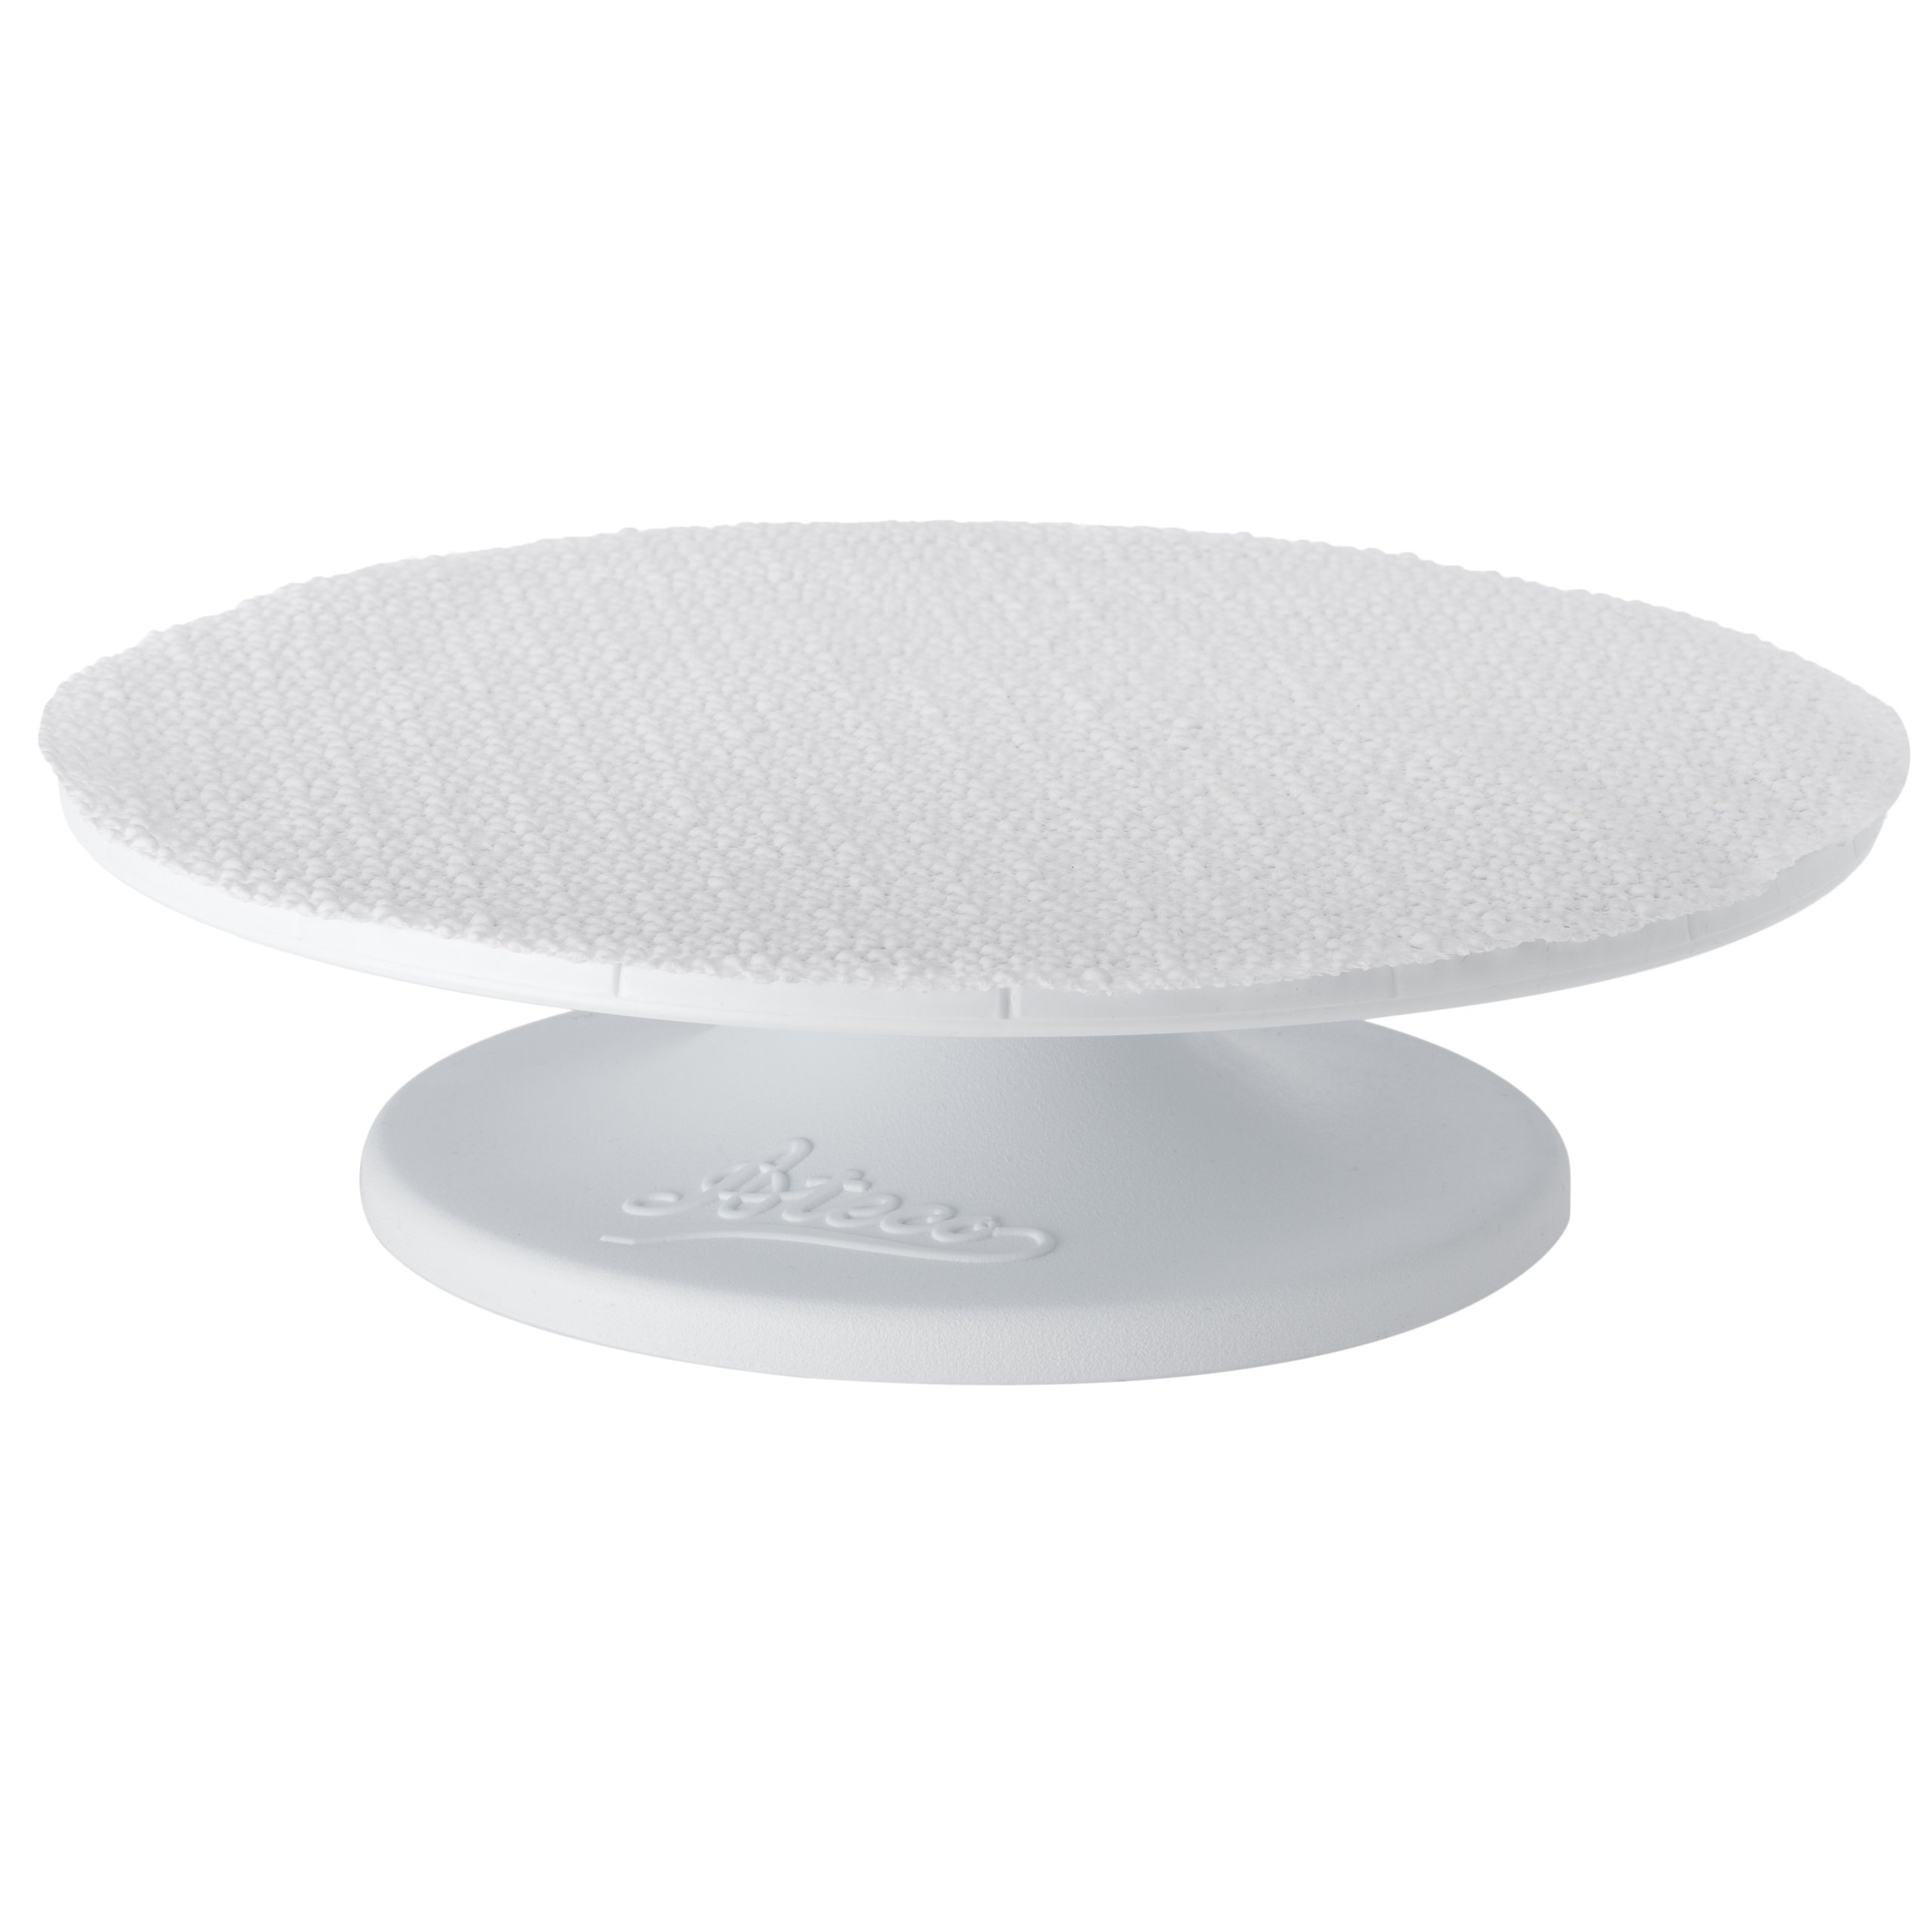 Ateco 610 Revolving Cake Decorating Stand with Non-Slip Pad, 12'' Round, Food-grade Plastic Base & Top